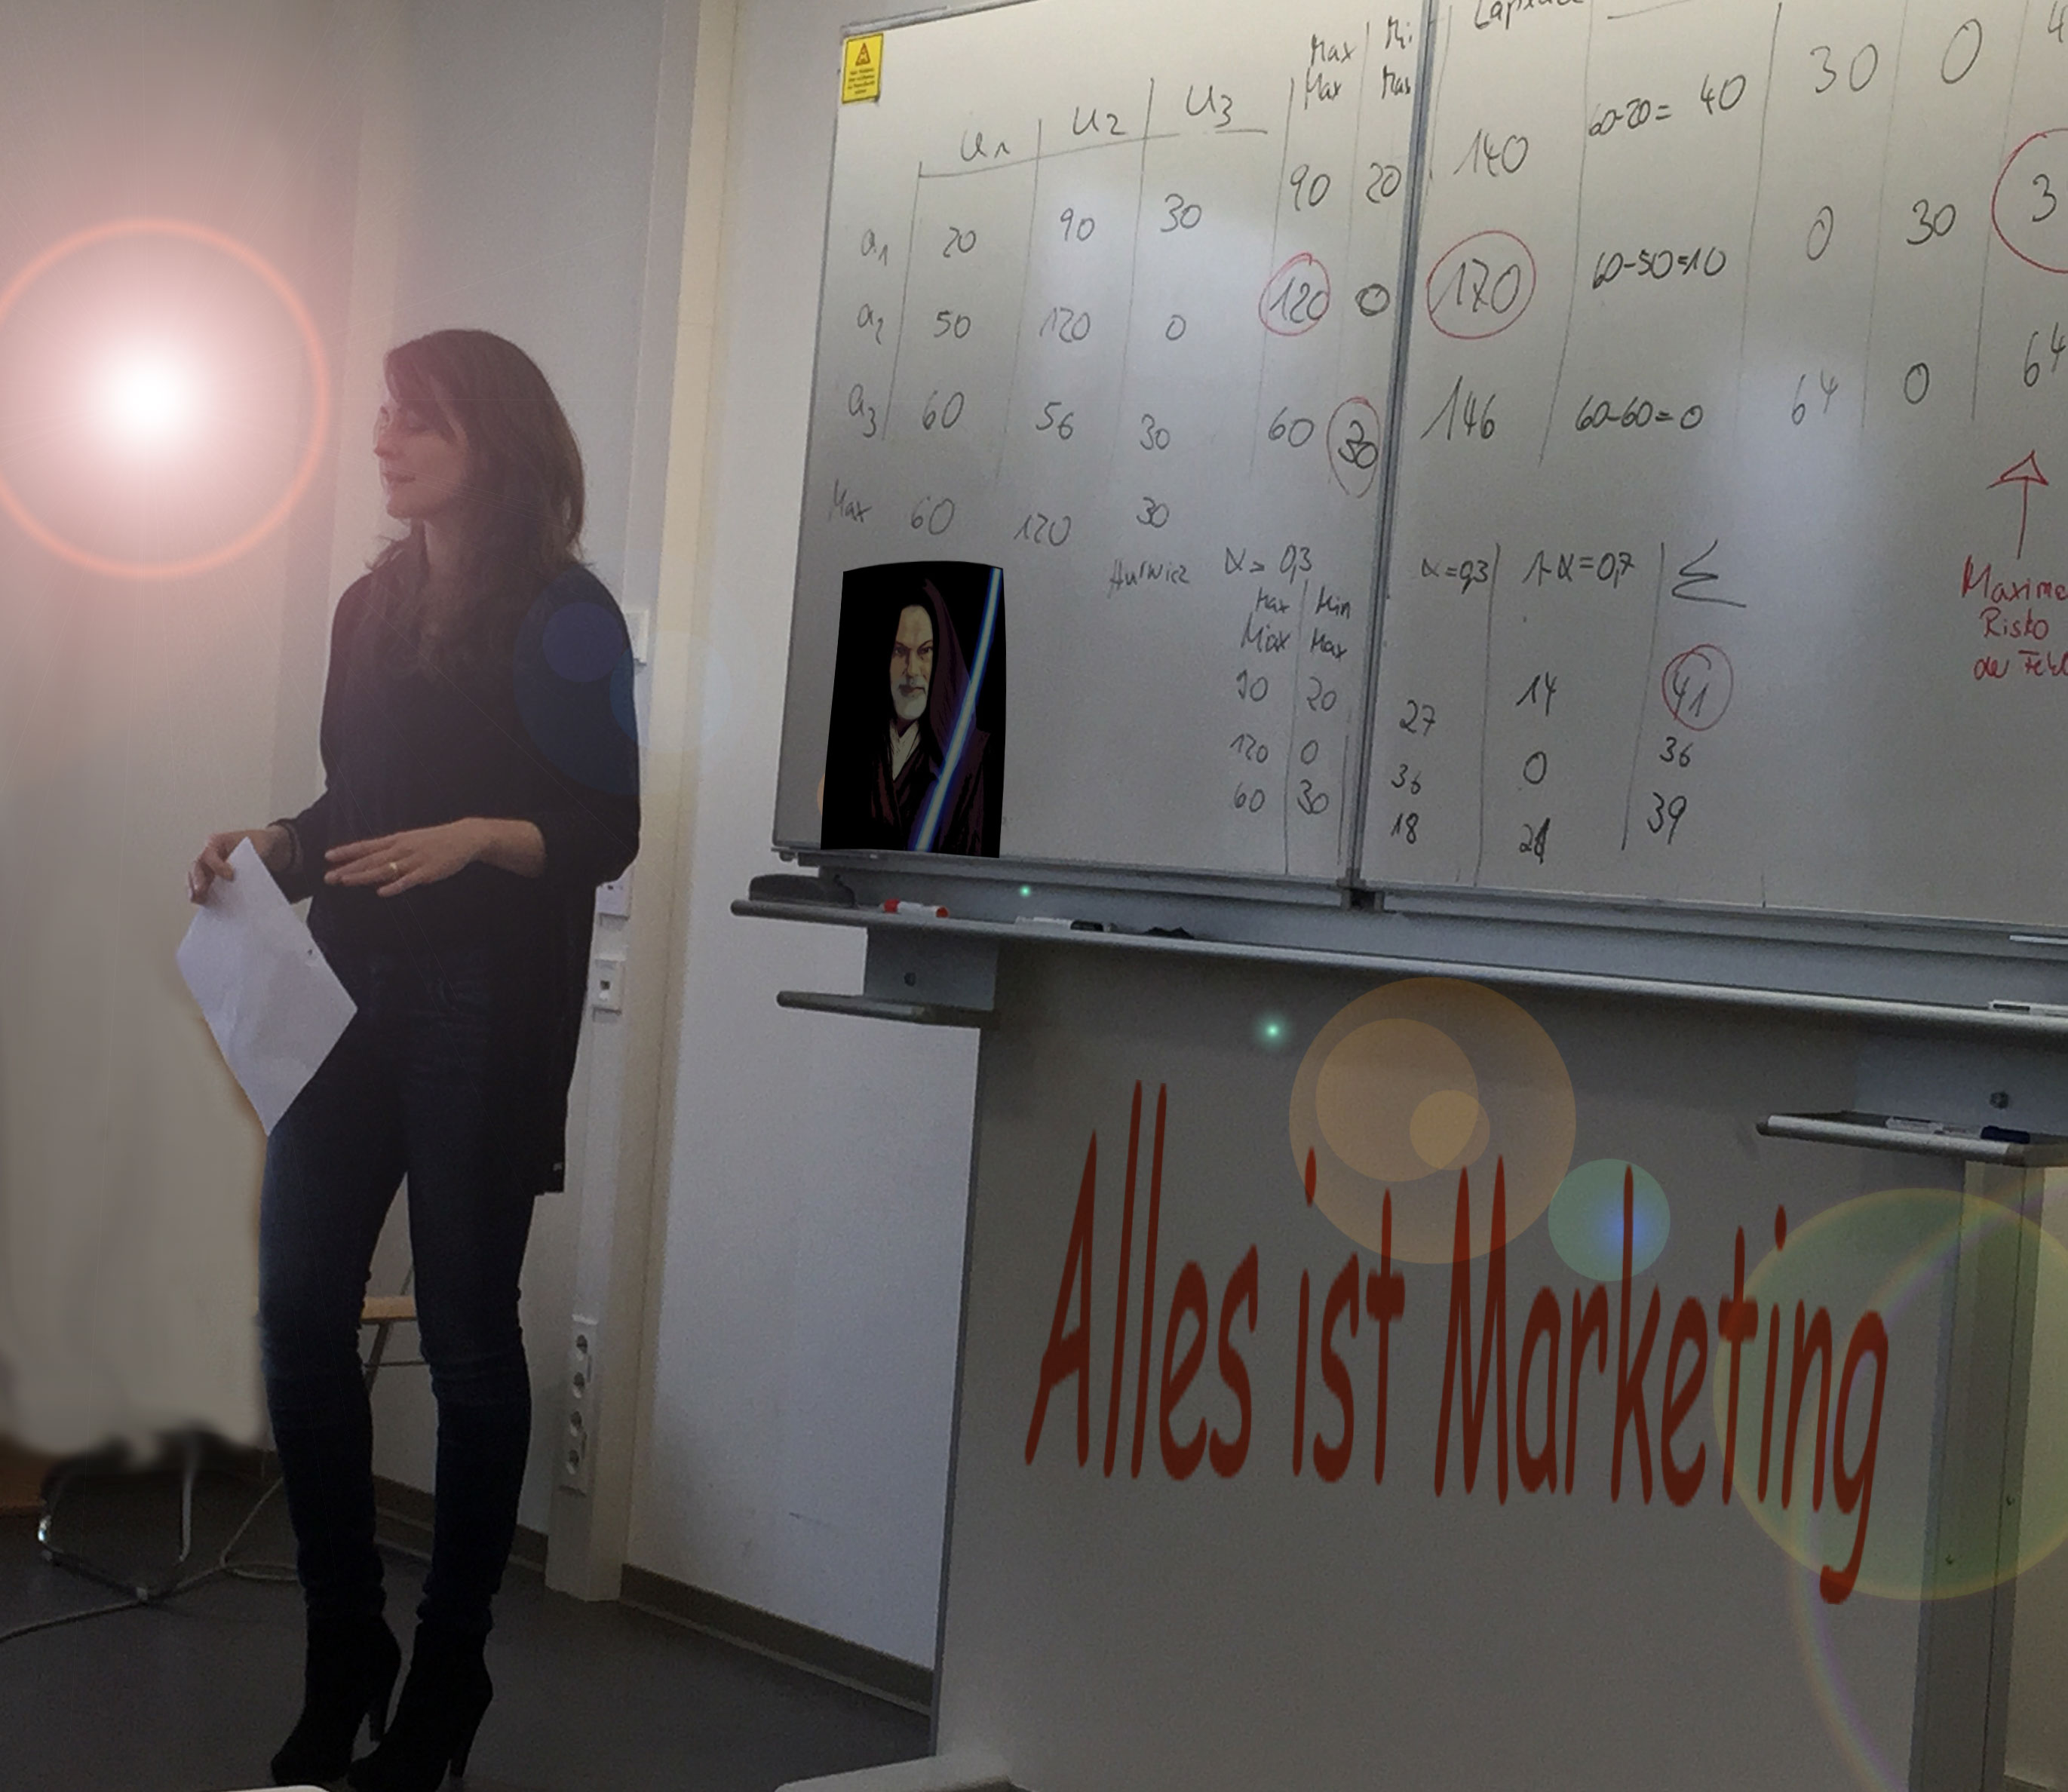 Anna Imamovic Hochschule Kaiserslautern digital media marketing